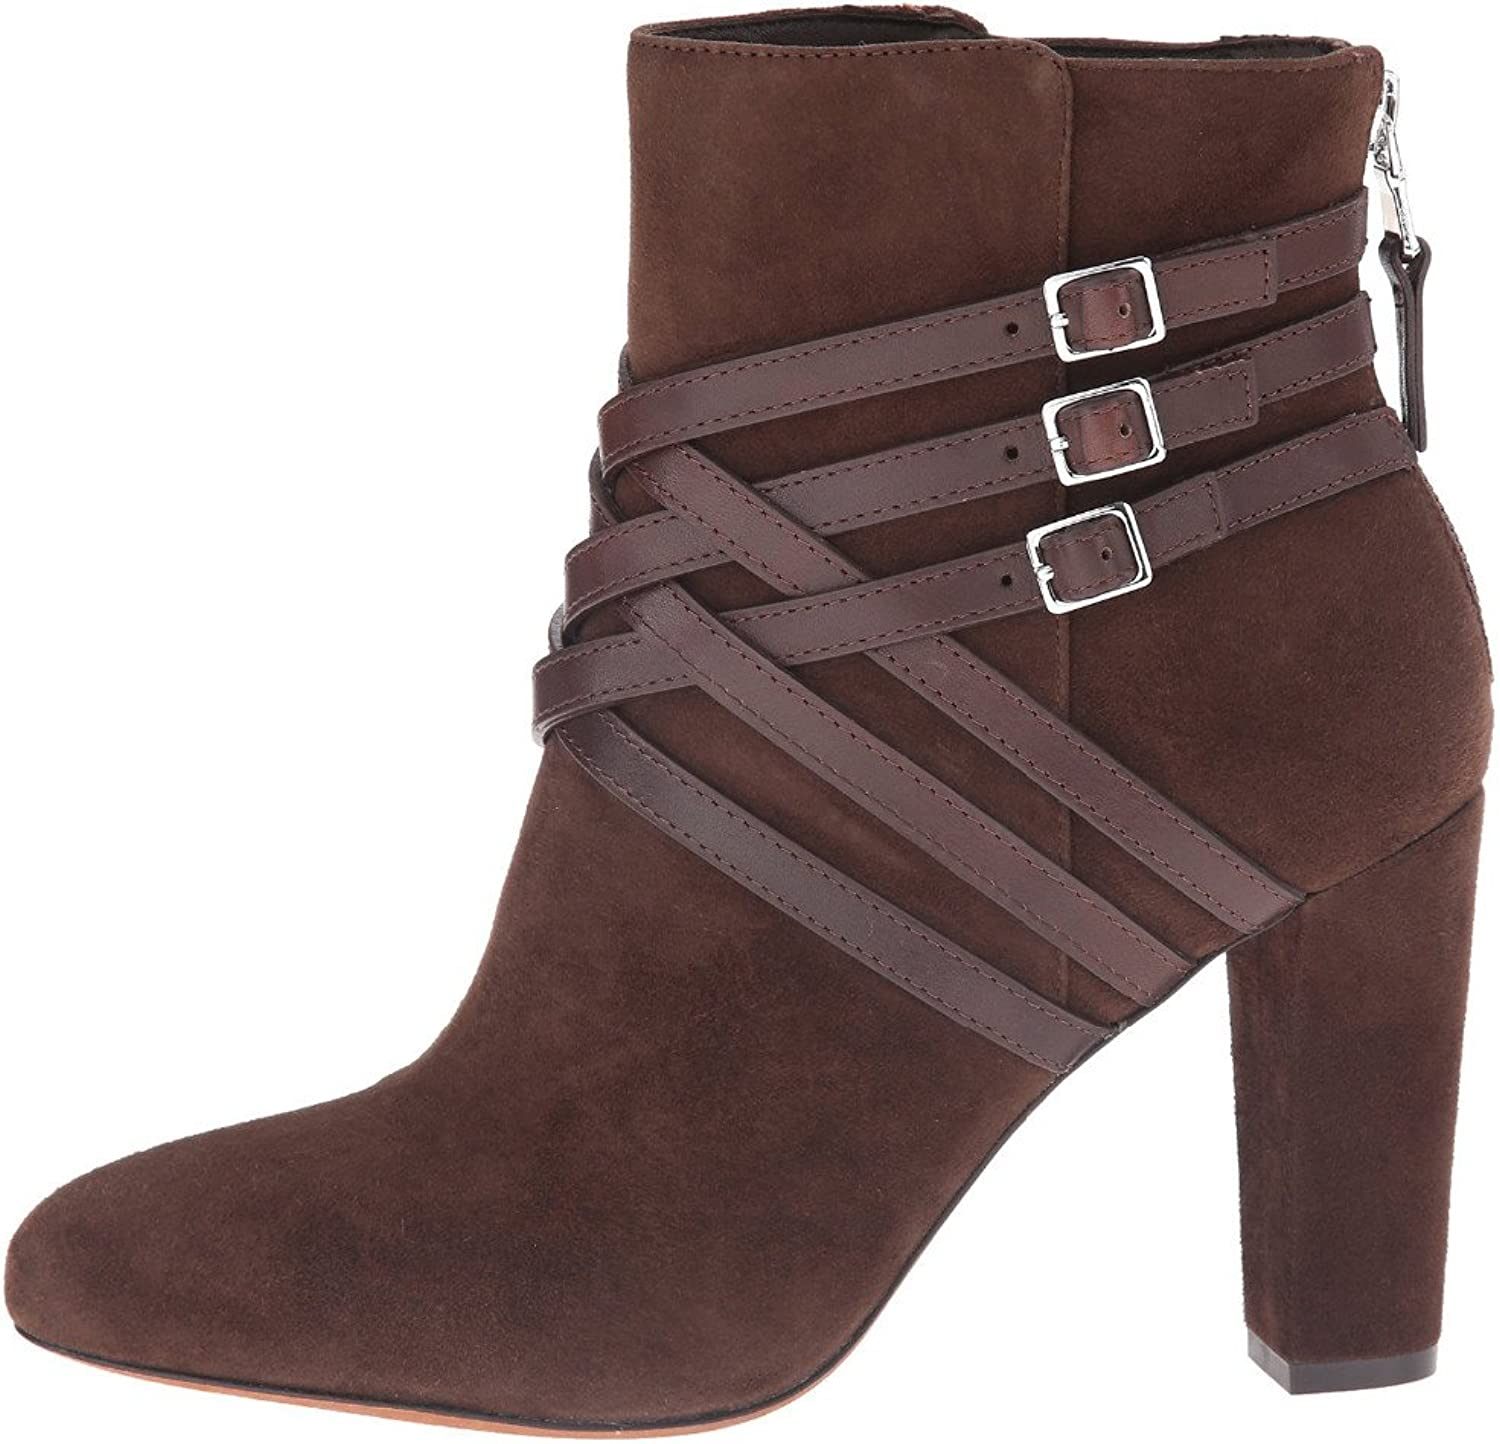 AIWEIYi Womens Belt Strap Chunky High Heels Ankle Boots Brown